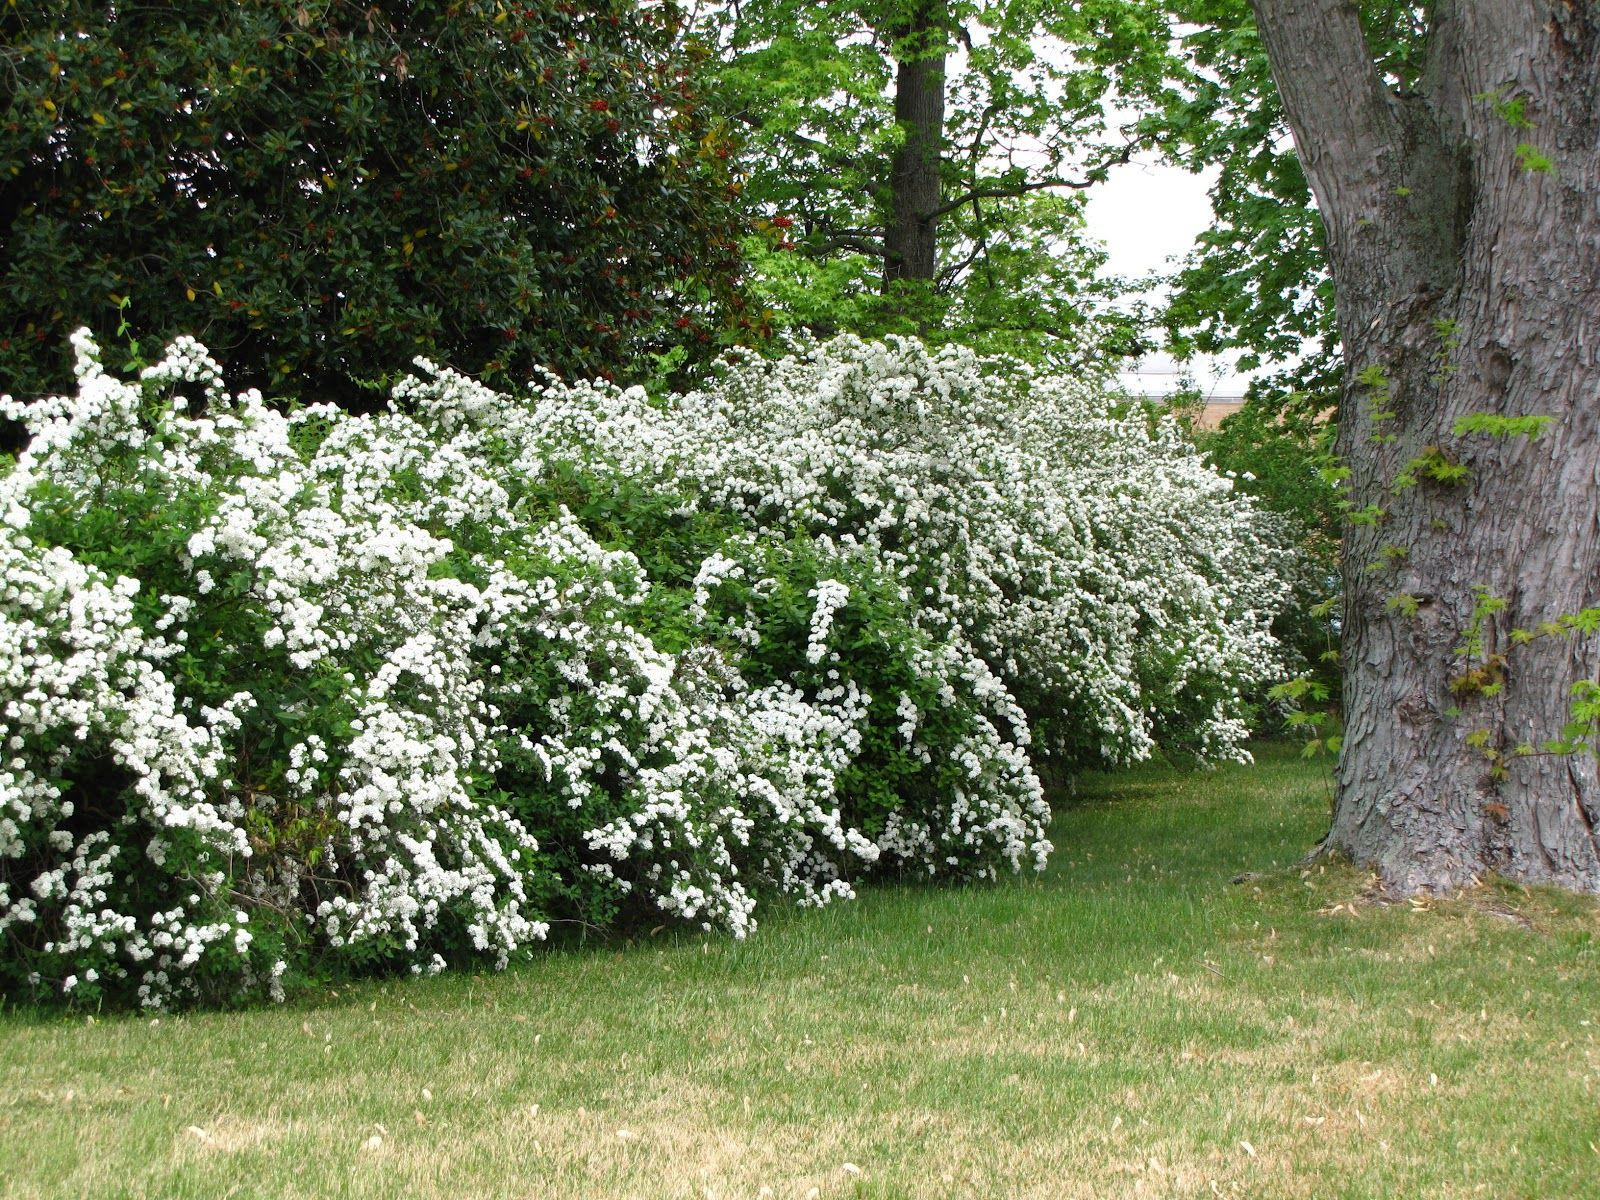 Spirea Hedge Jpg 1 600 1 200 Pixels Plants Garden Shrubs